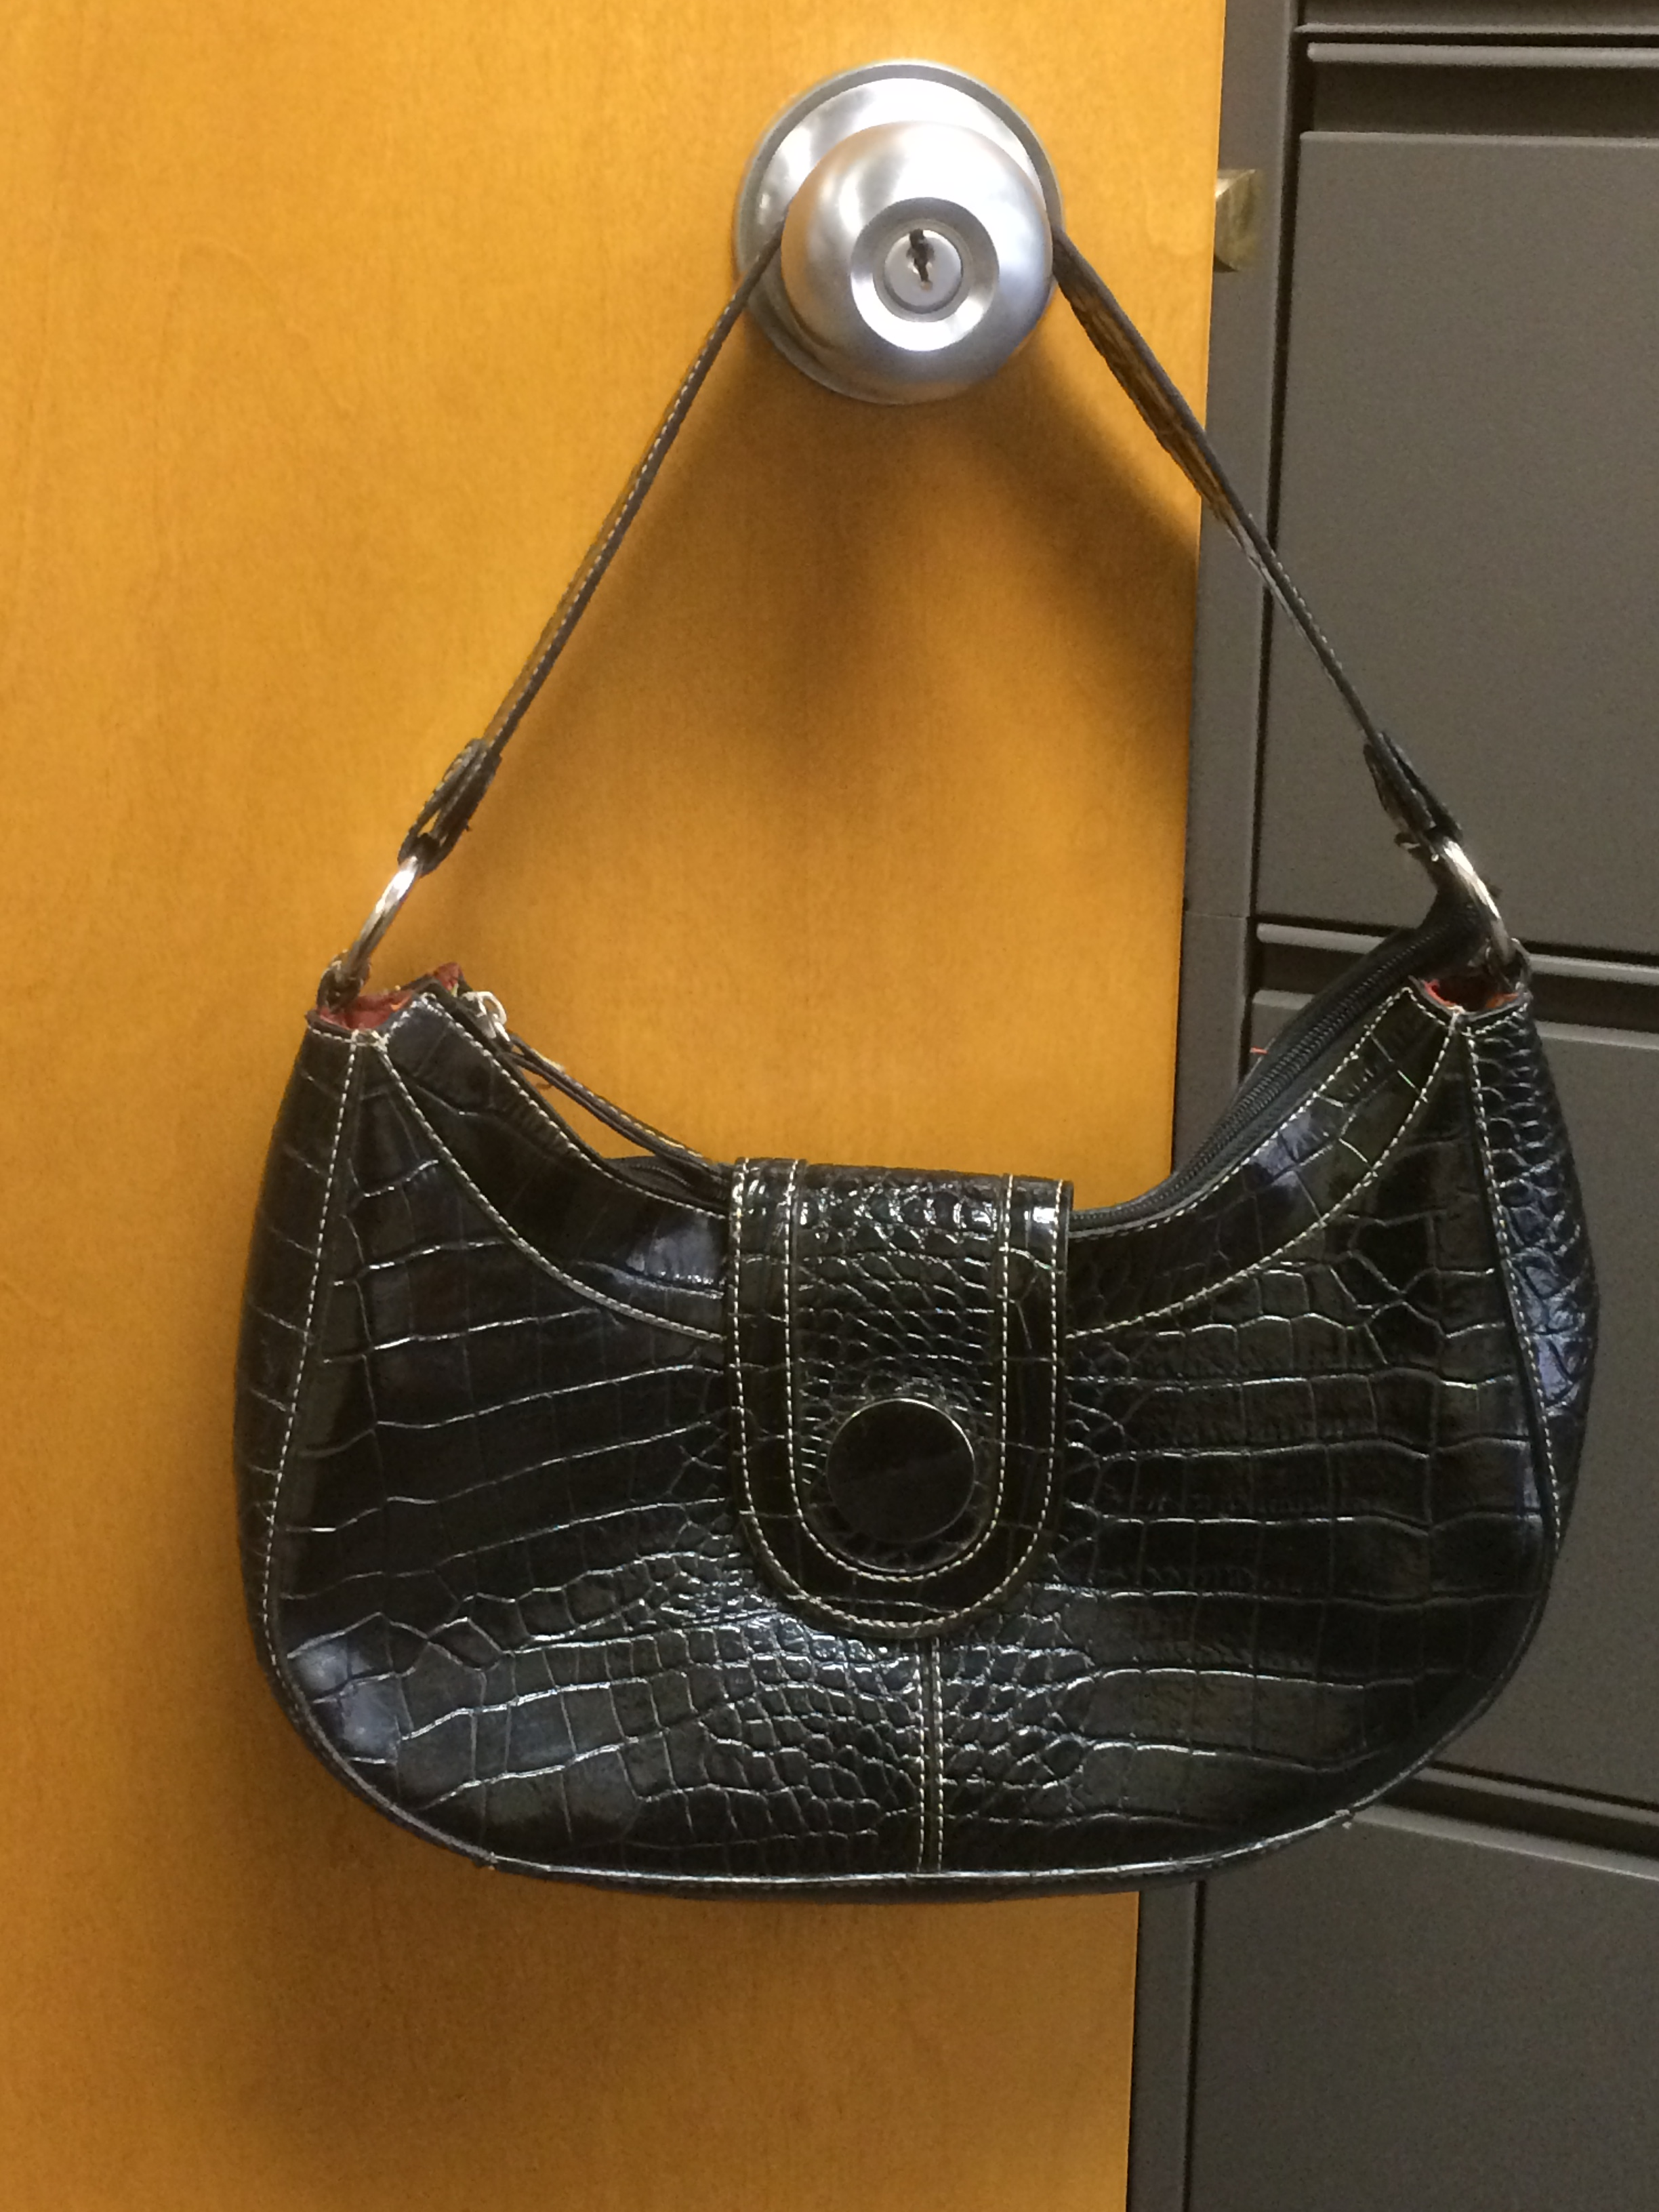 44c73af6bf2b Here's a cute little black faux mock croc purse by emille m. This is a  brand you can find sometimes at TJ Maxx. It's got a colorful lining and  inside zipper ...